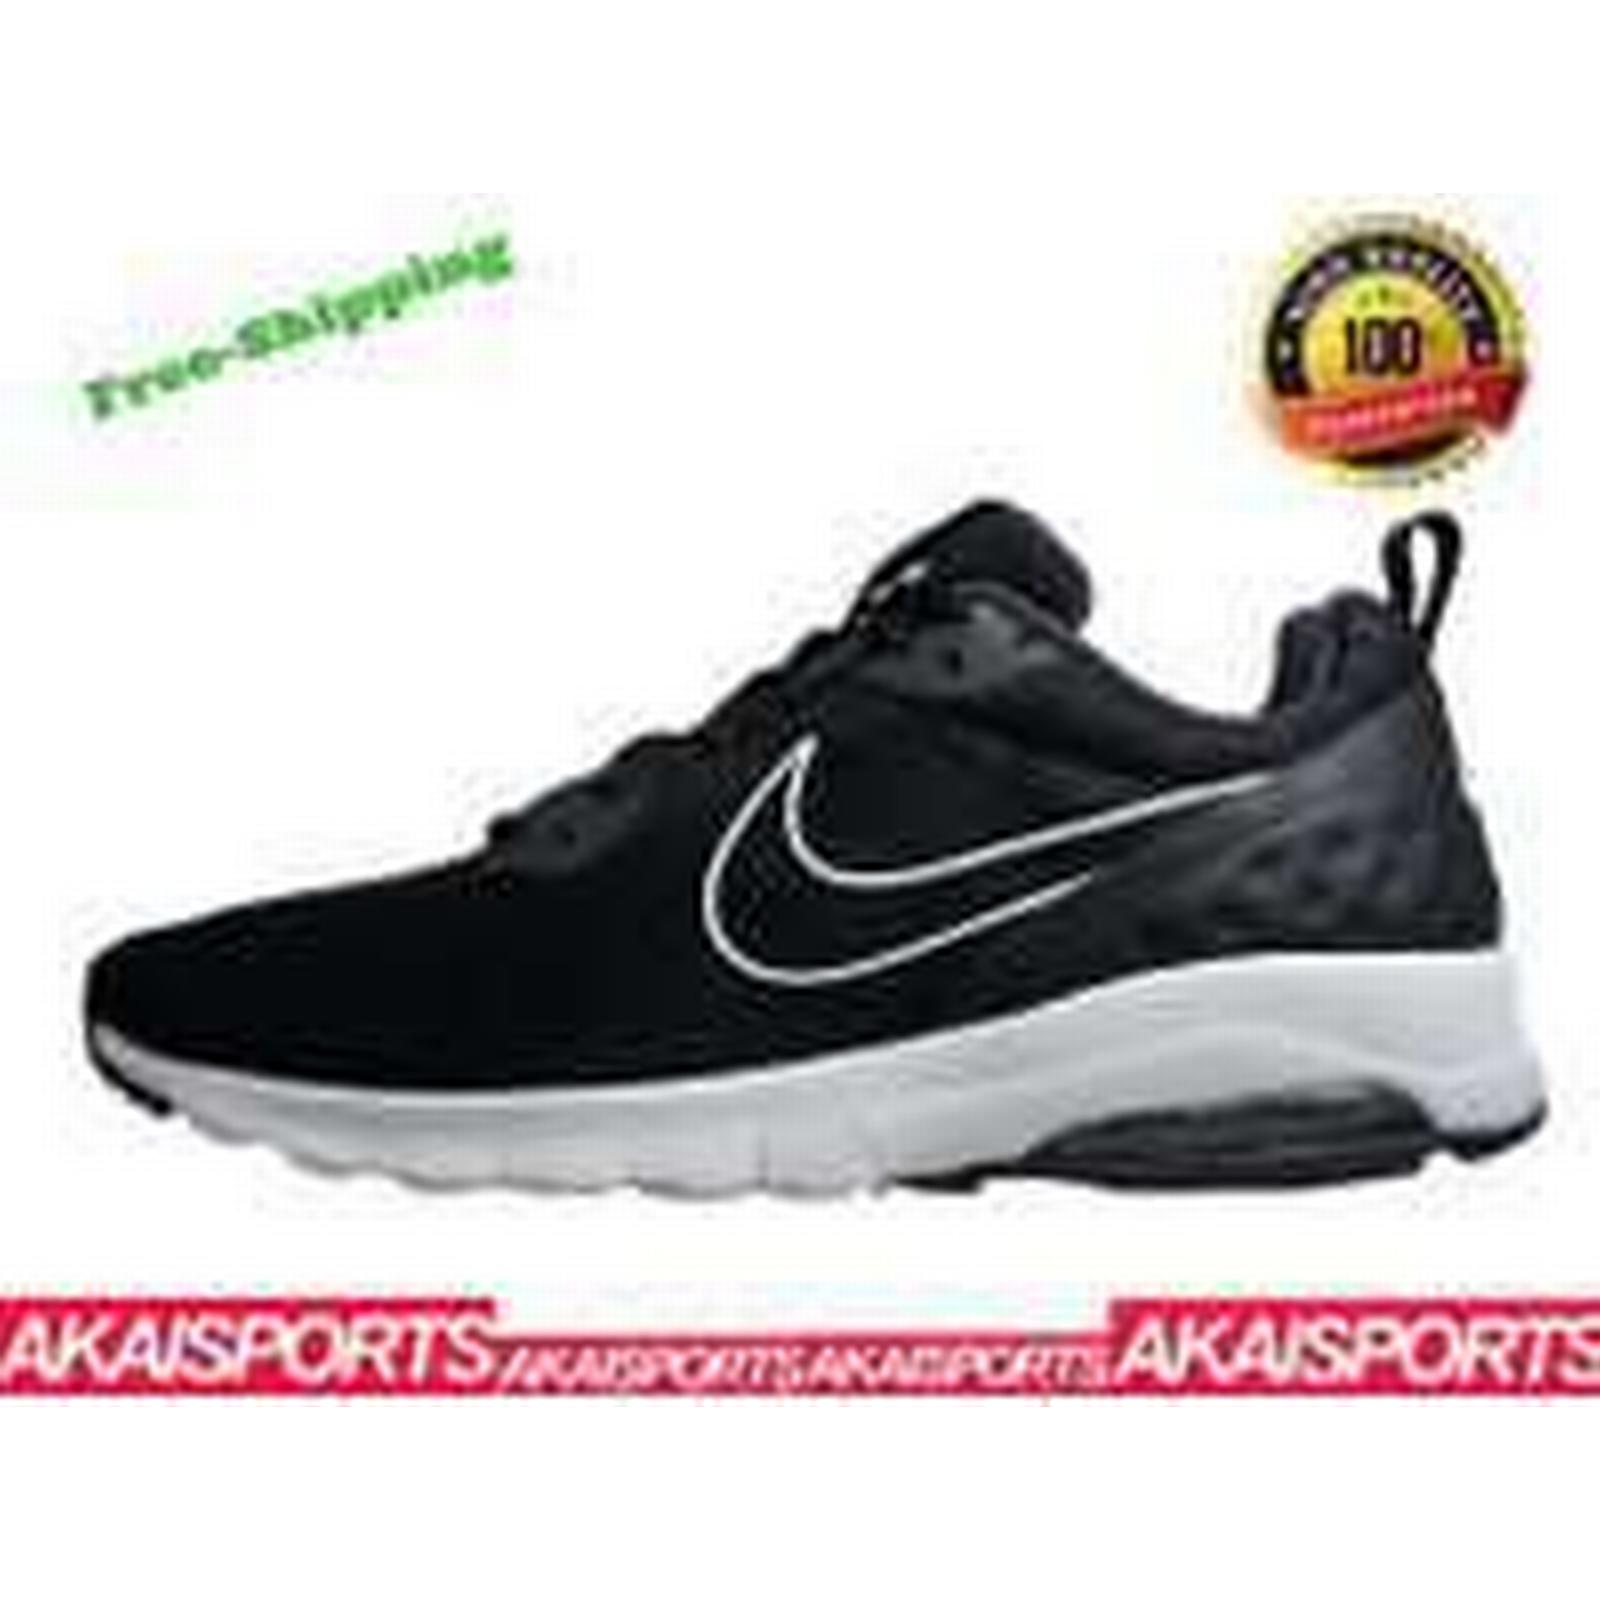 ... indoor soccer shoes Gavle. nike men s air max motion running sneakers 0574ea334